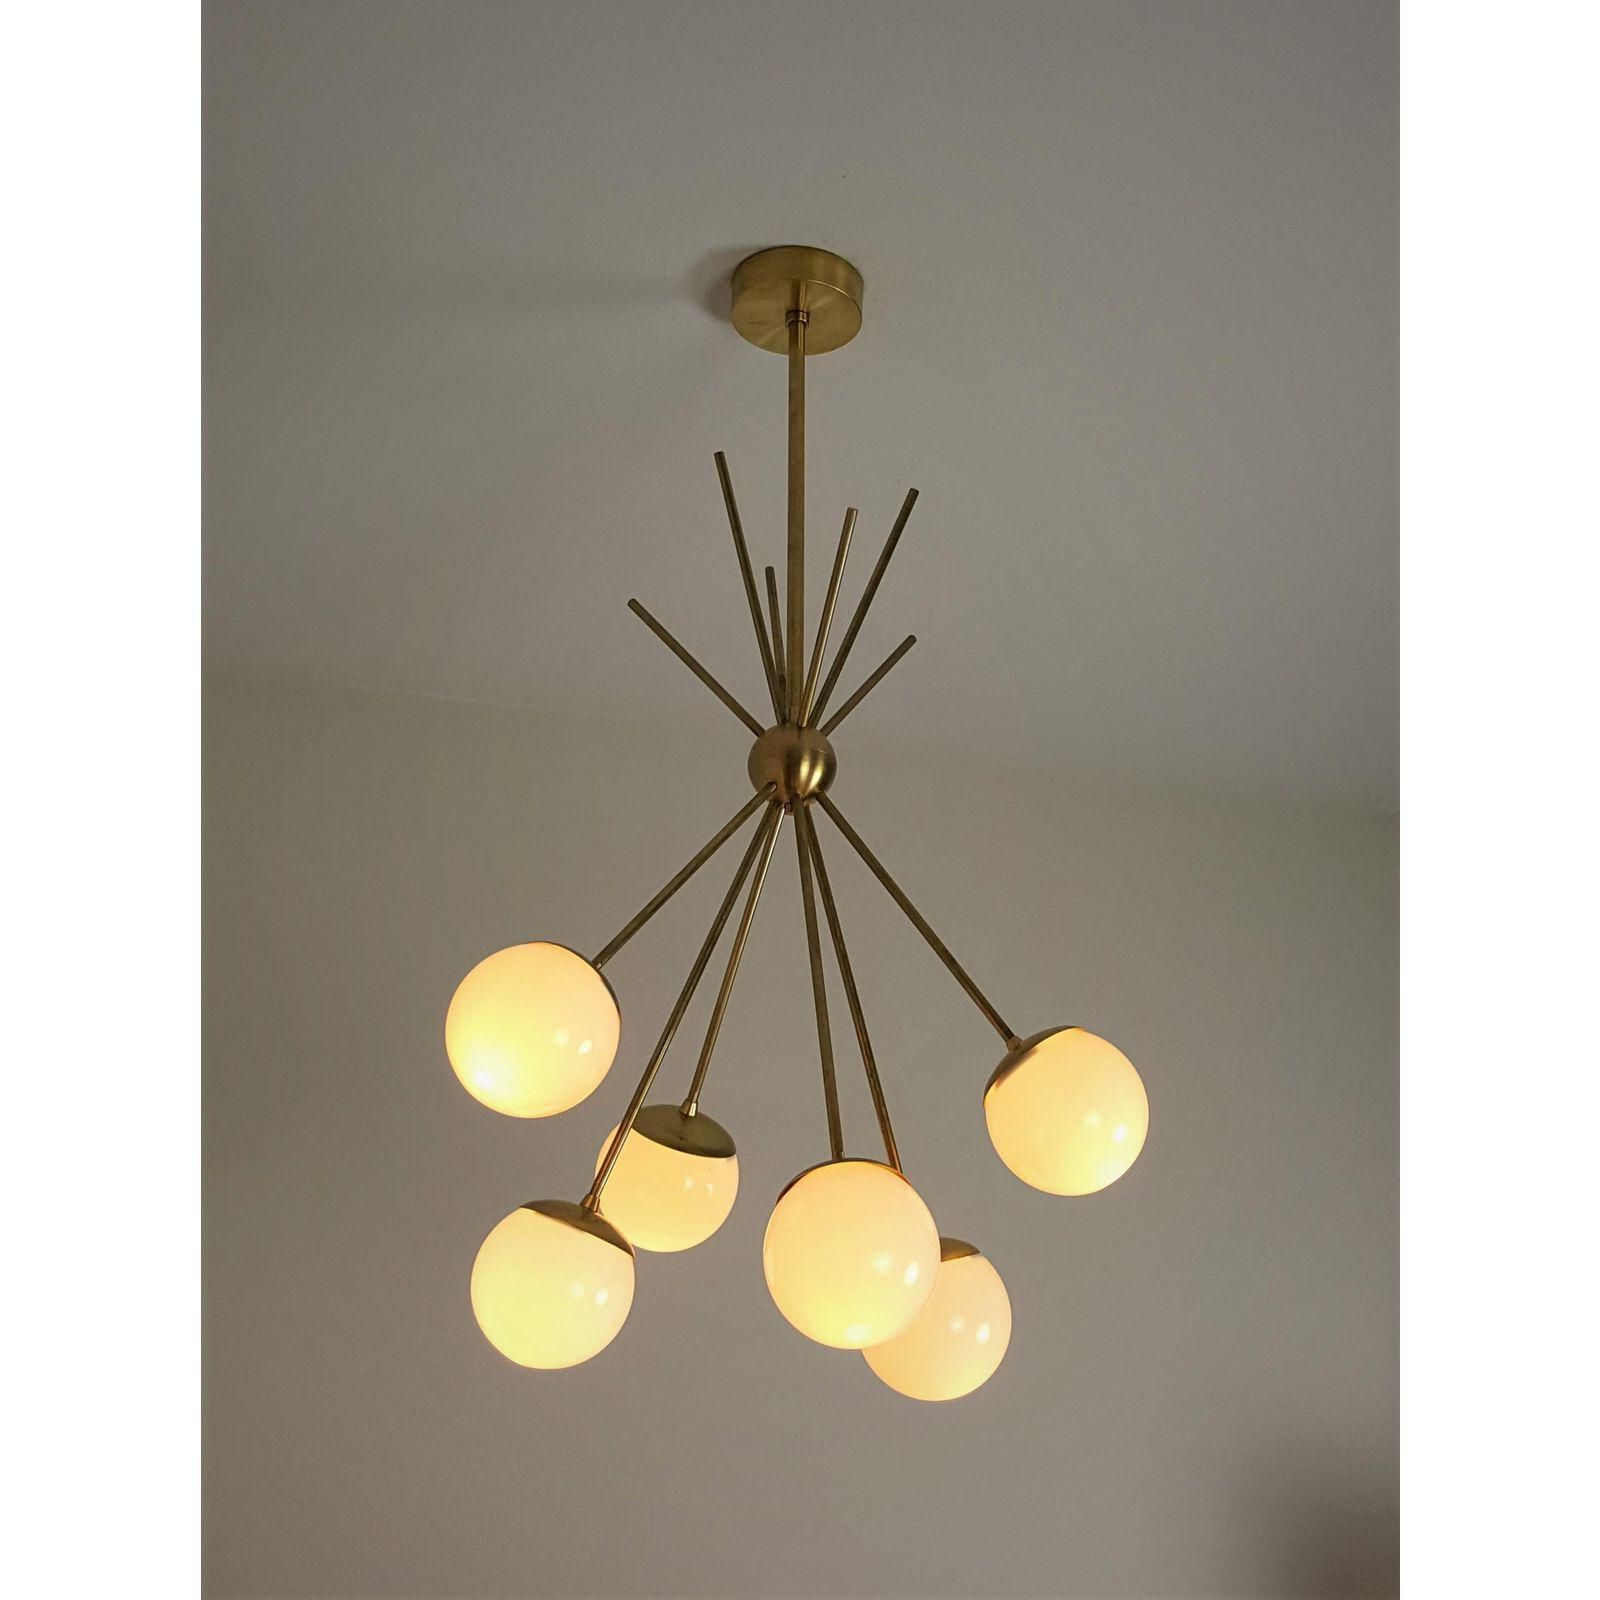 "Well Known Burst"" Model 220 Chandelierblueprint Lighting – Image 5 Pertaining To Bautista 5 Light Sputnik Chandeliers (Gallery 16 of 20)"